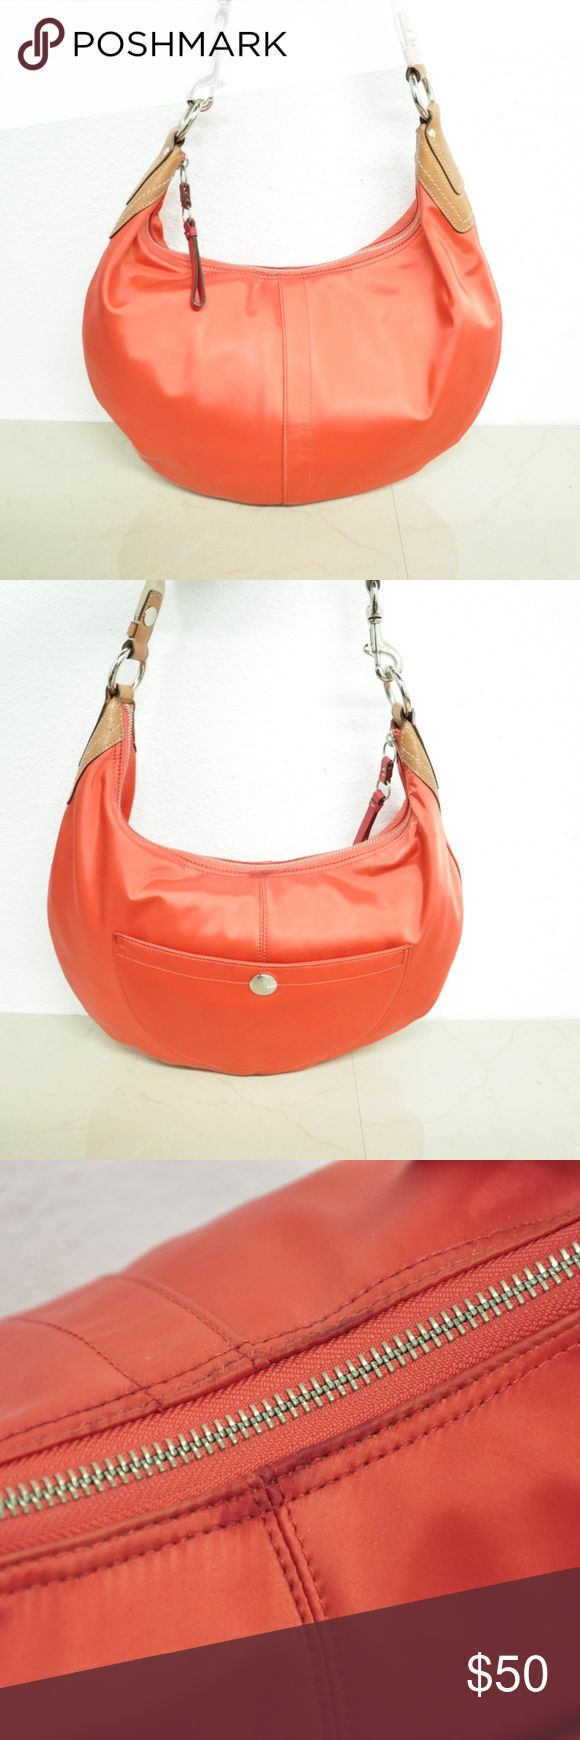 Coach 11743 Hampton Satin Hobo Orange Shoulder Bag Coach 11743 Hampton Satin Hobo Orange Shoulder Bag the bag is in good shape it has some stains near the zipper(as pictured) the lining is in great shape height 10'' depth 3'' width 17'' strap drop: 11'' Coach Bags Shoulder Bags